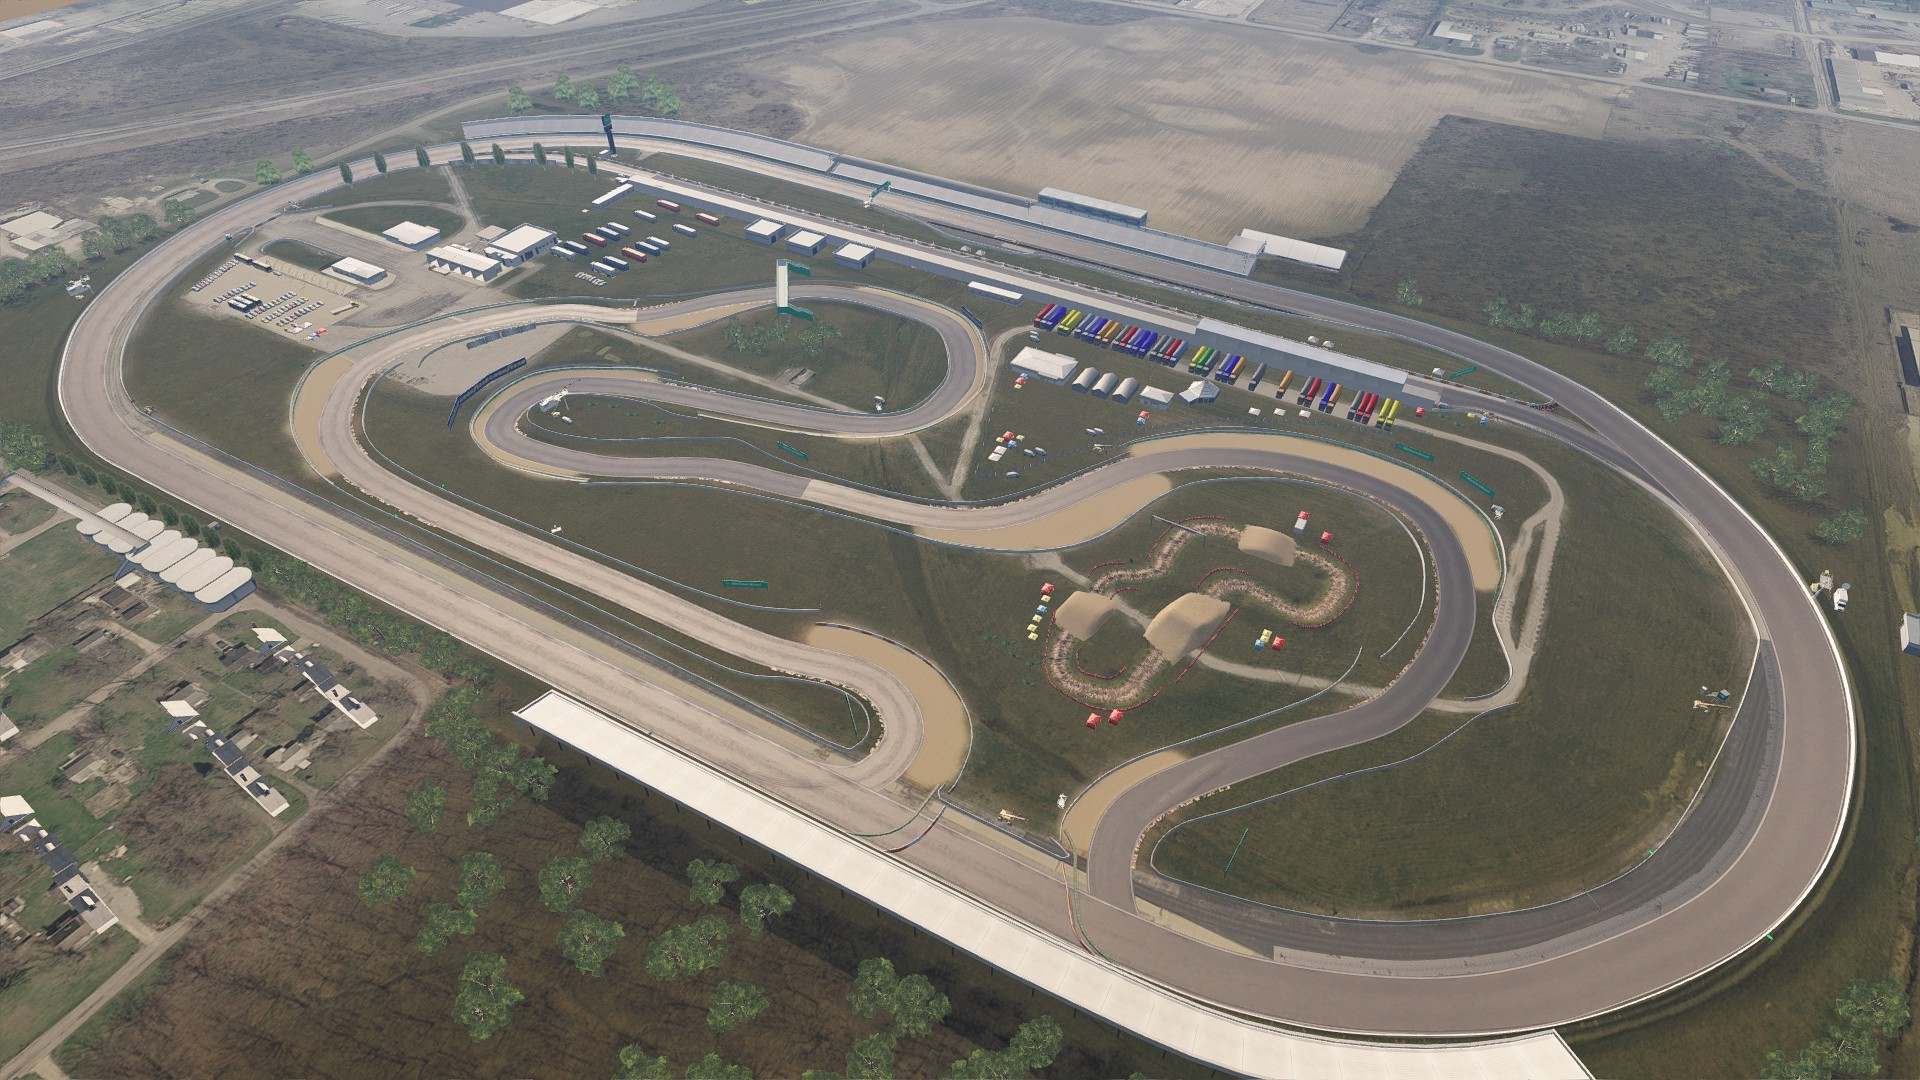 Tracks - Fort Wayne Speedway - Oval & Infield course